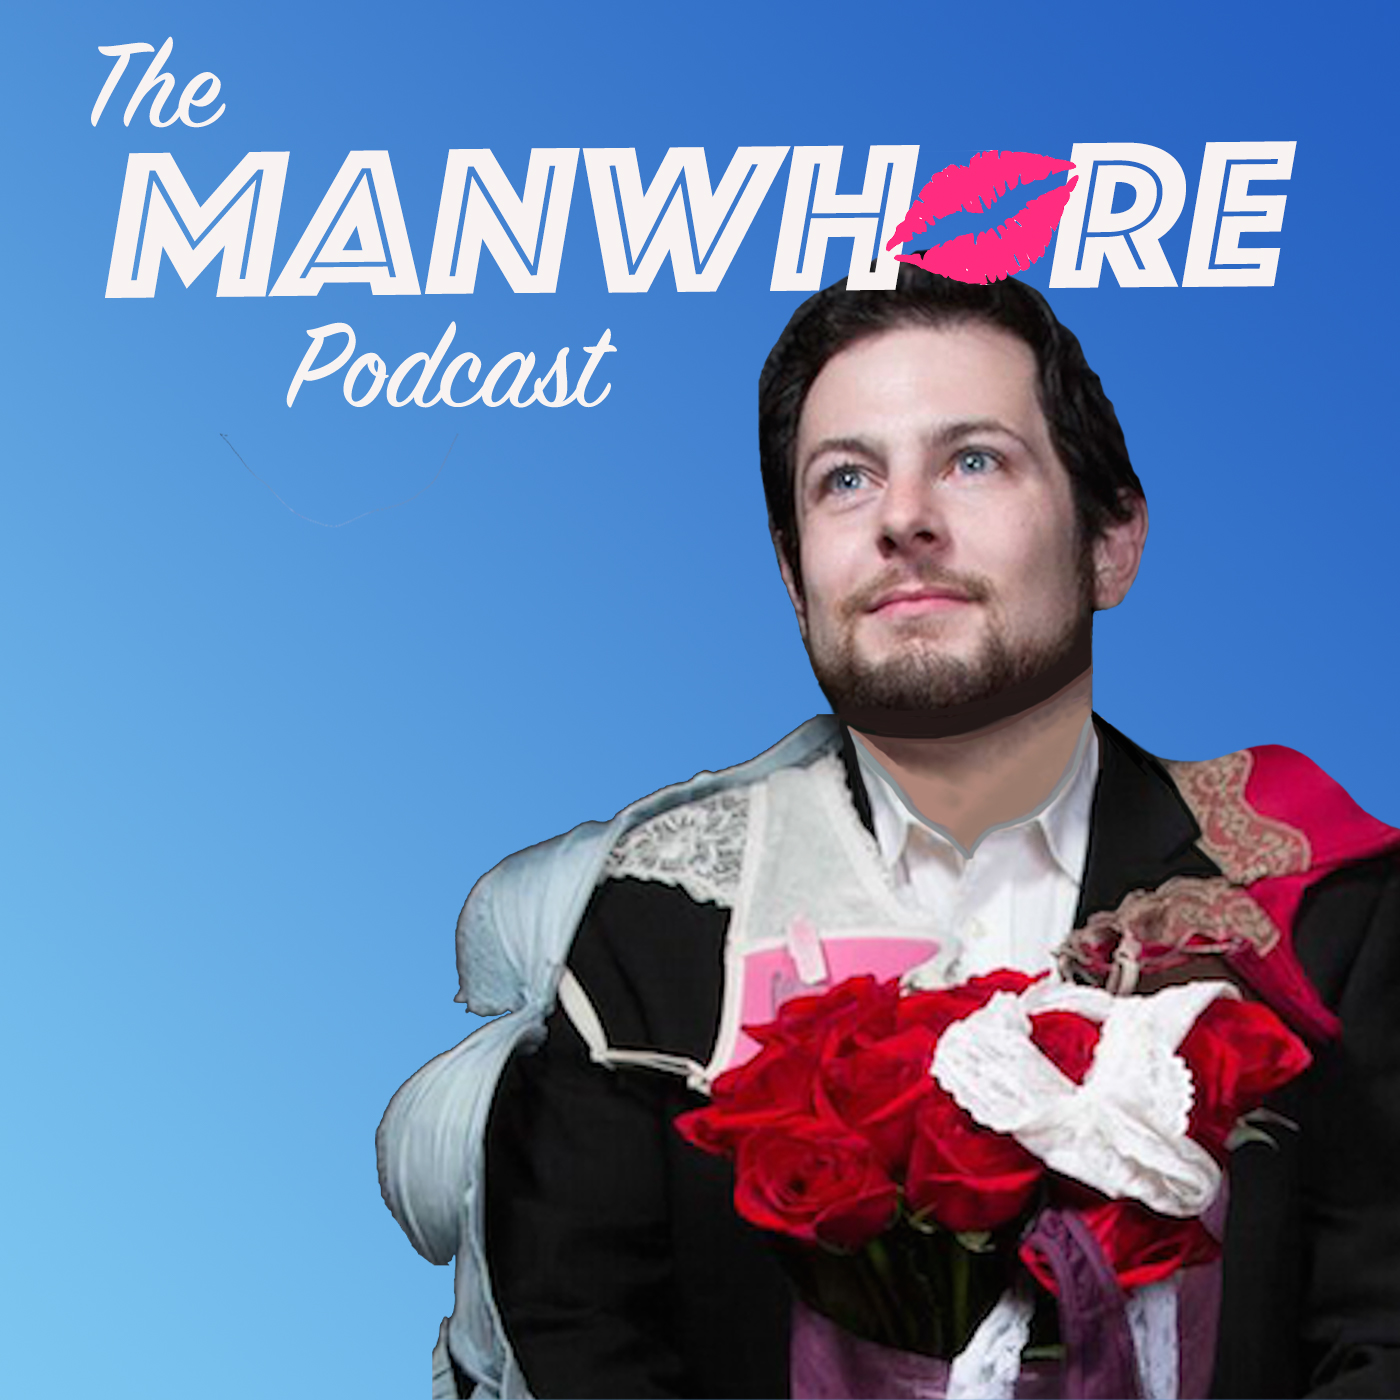 The Manwhore Podcast: A Sex-Positive Quest - Ep. 205: The End of a Slut Streak—Sex Parties, Intimacy, and Platonic Love